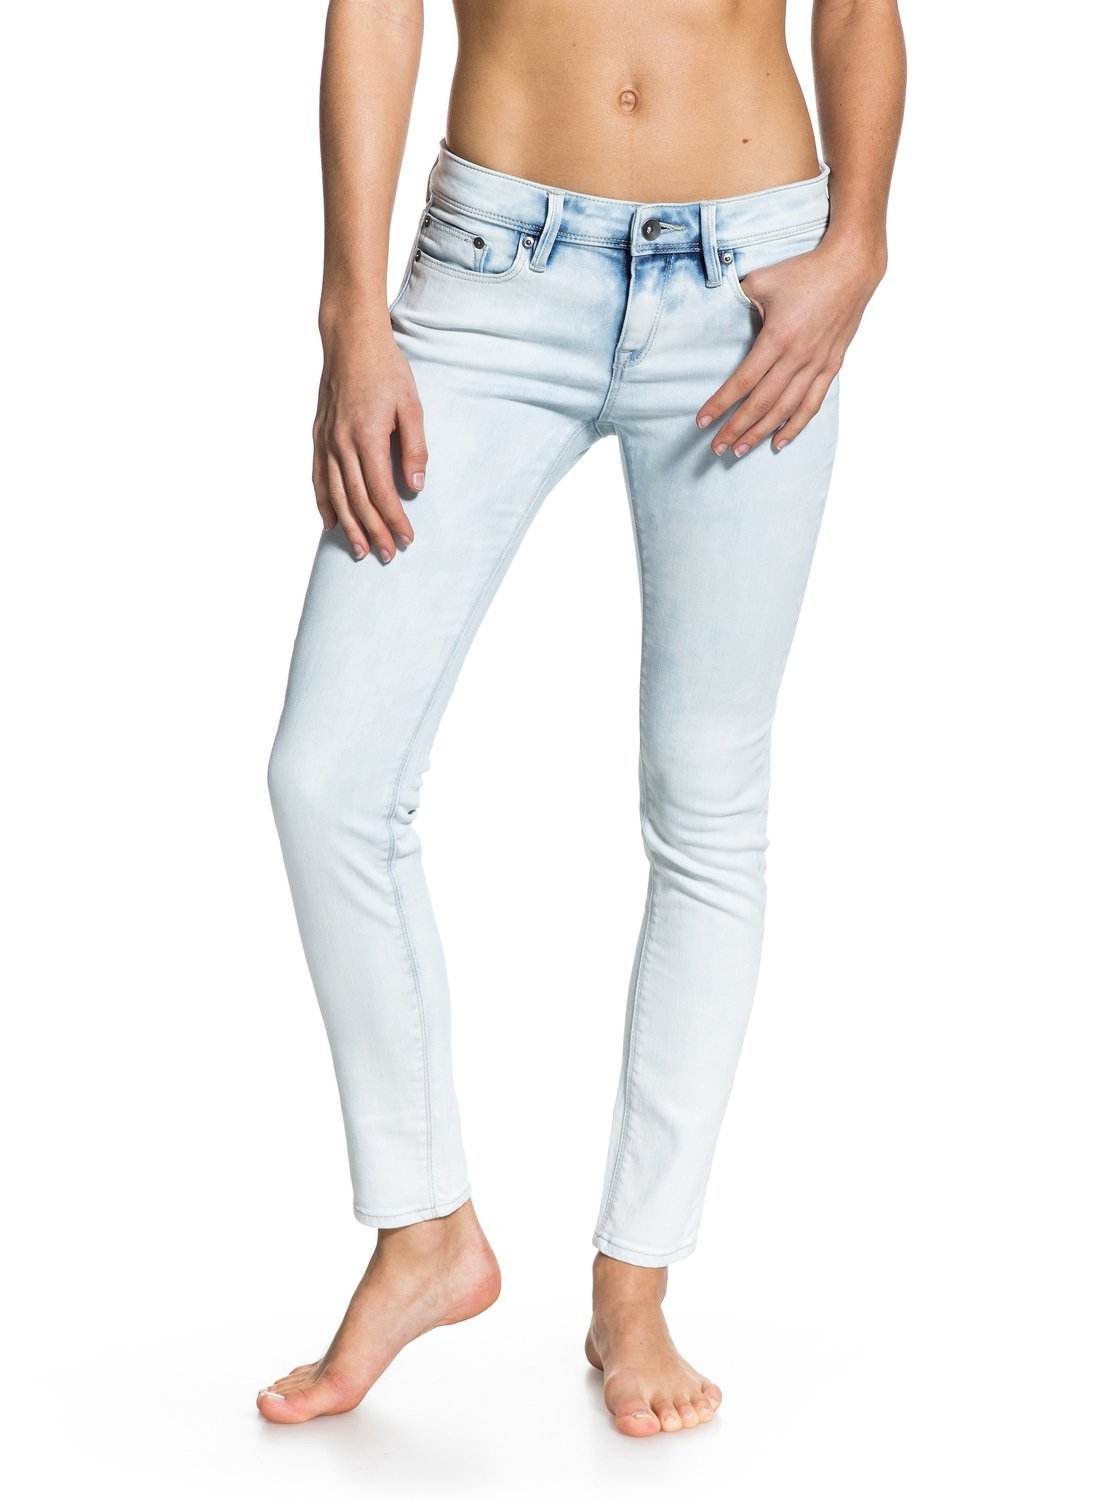 Find bleached jeans womens at ShopStyle. Shop the latest collection of bleached jeans womens from the most popular stores - all in one place.